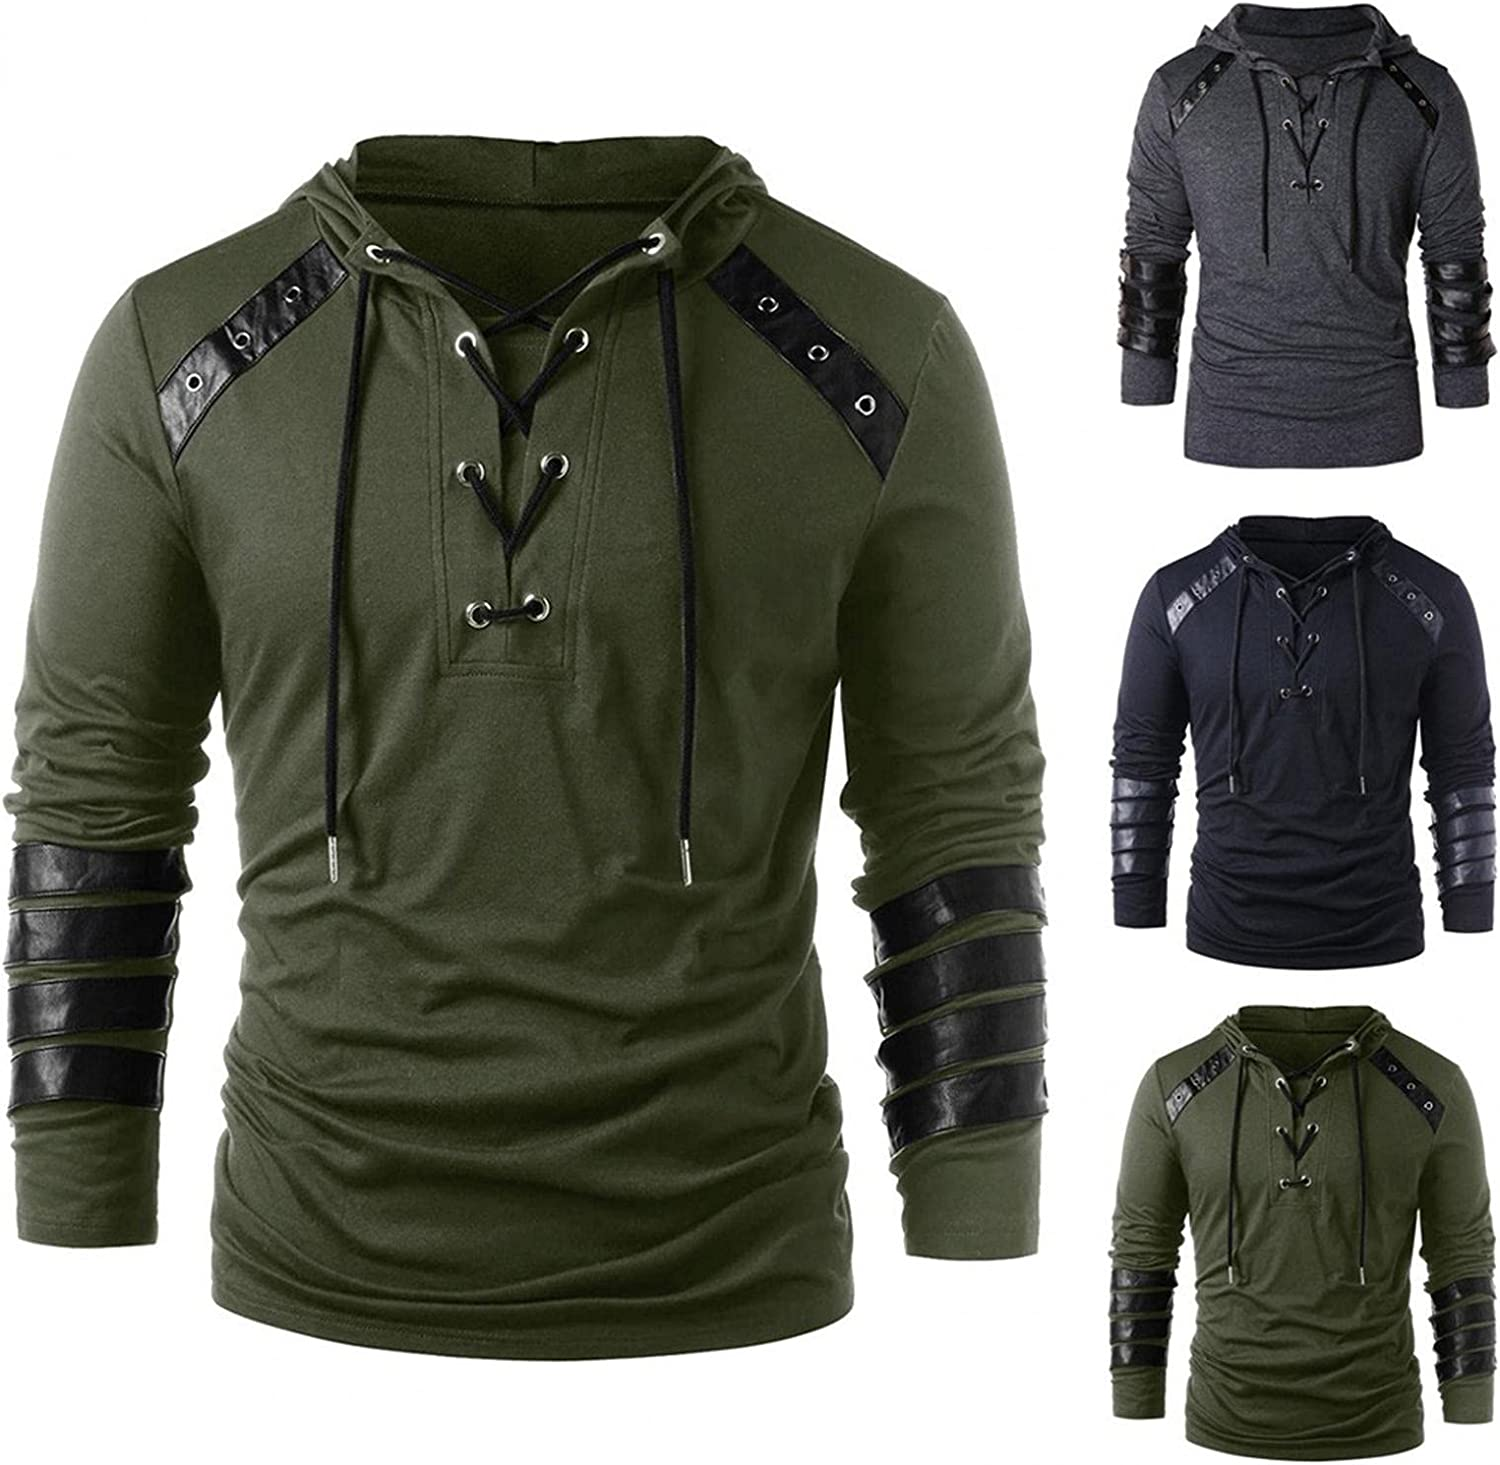 Mens Gothic Shirt, Men's Gothic Steampunk Shirts Sweatshirt Lace Up Long Sleeve Pullover Hooded Medieval Tees Costume Tops